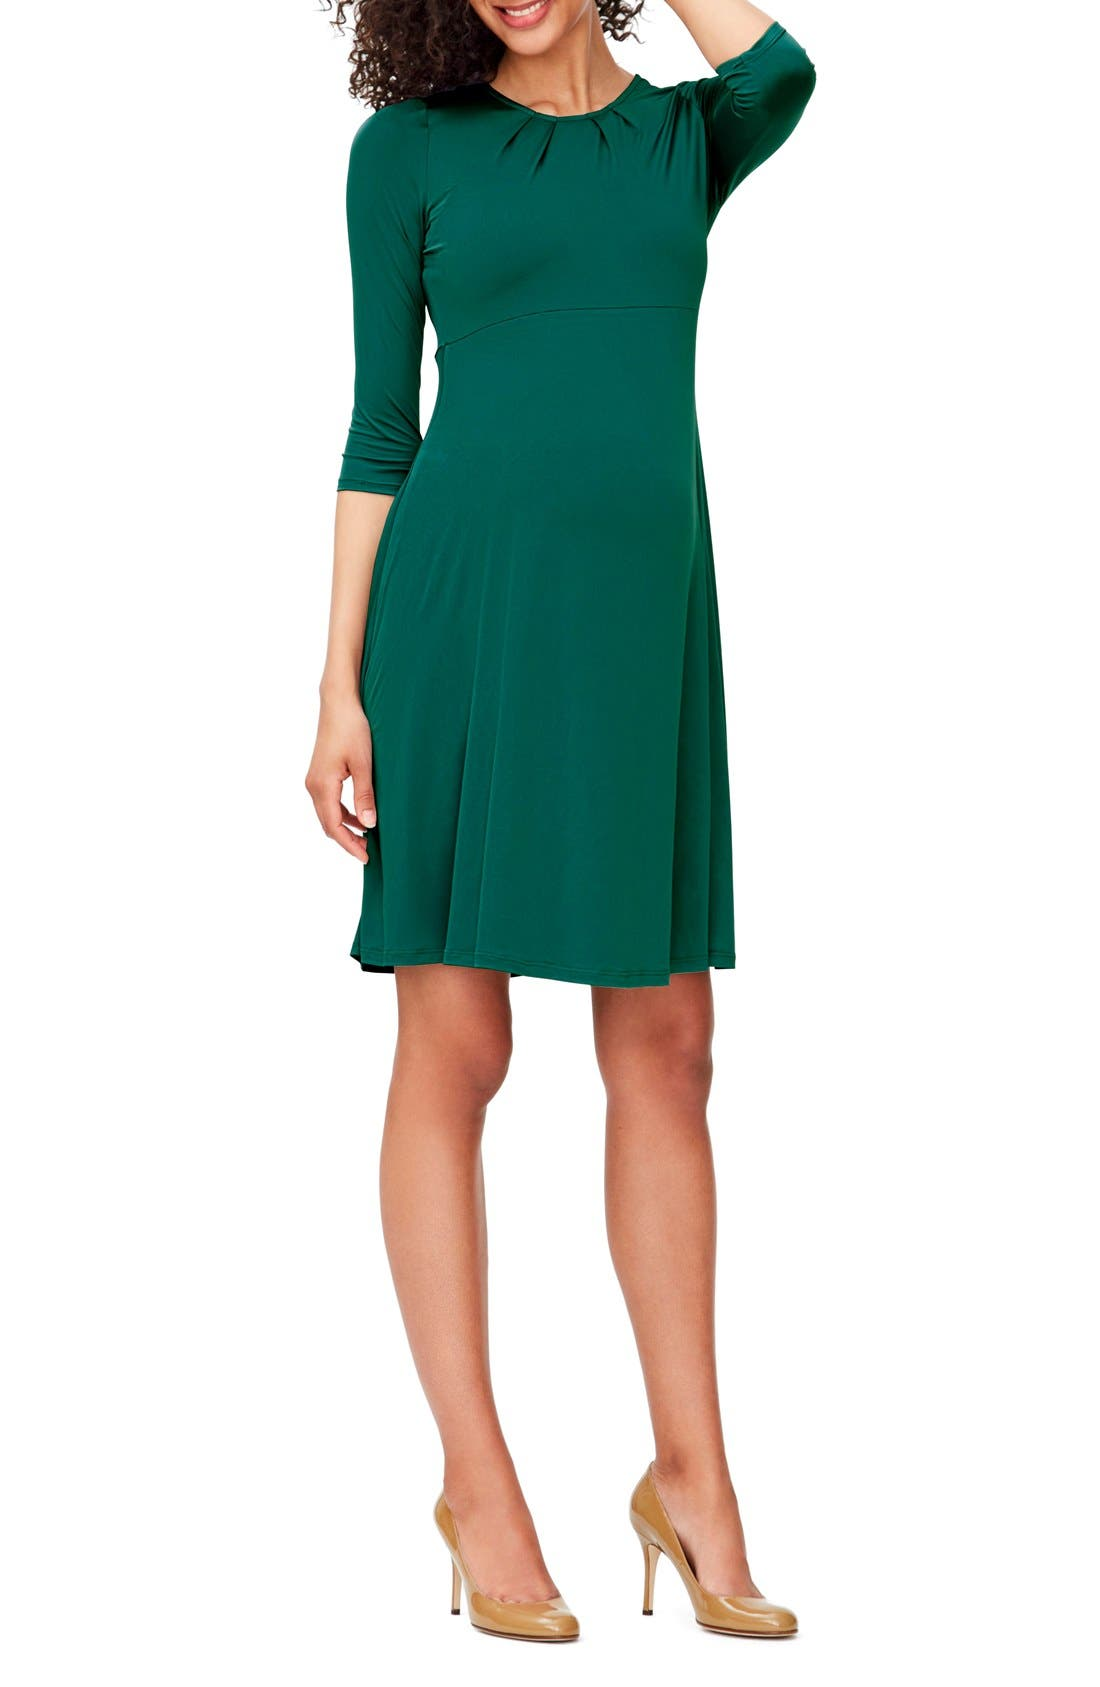 Leota 'Simone' Empire Waist Jersey Maternity Dress